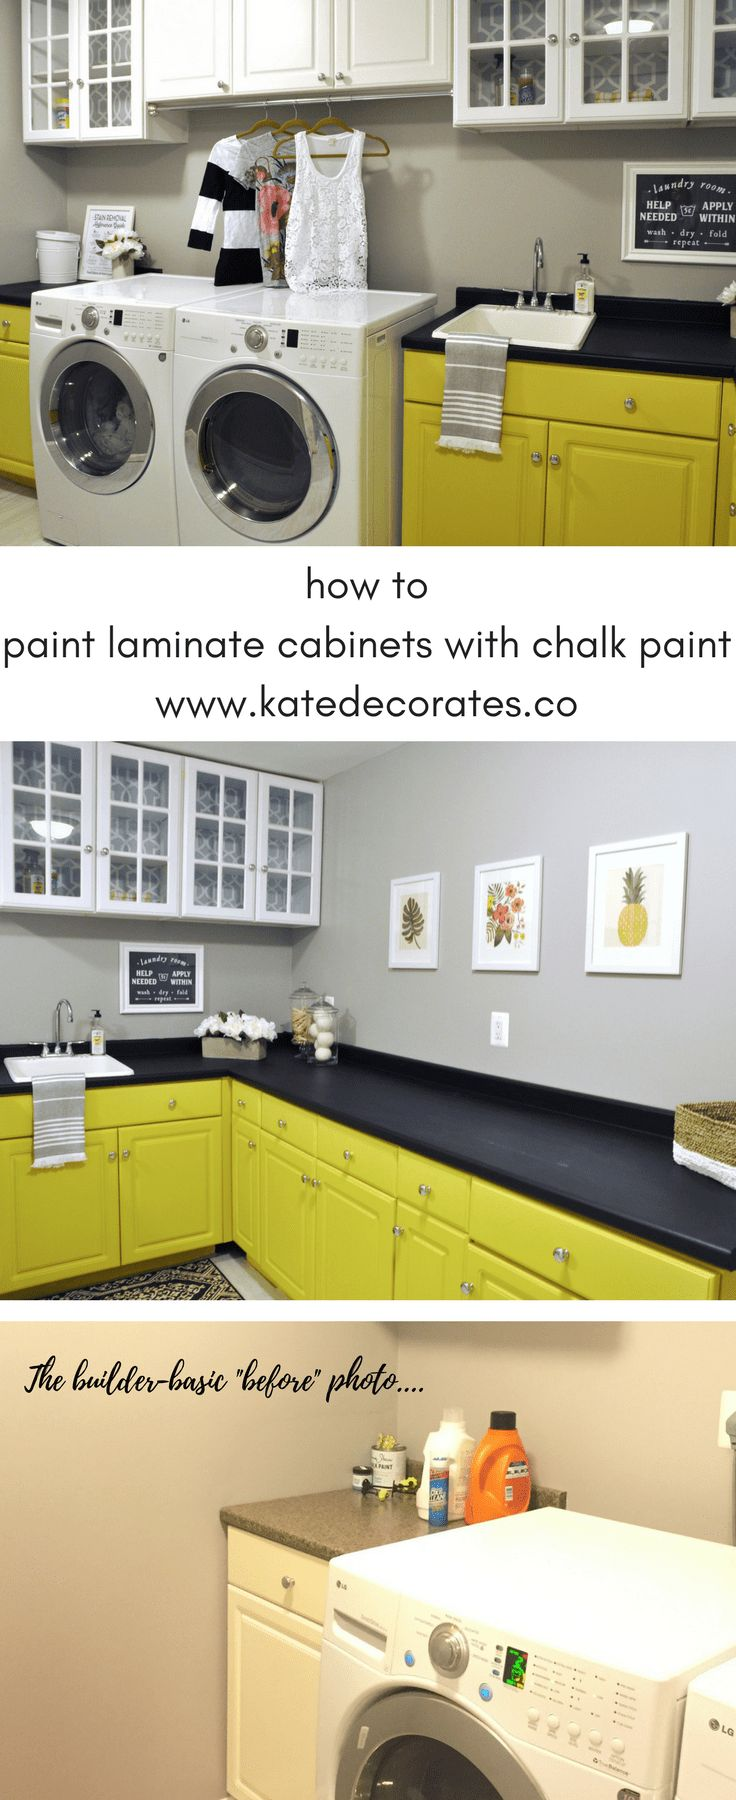 The 25+ best Paint laminate cabinets ideas on Pinterest | Painting ...